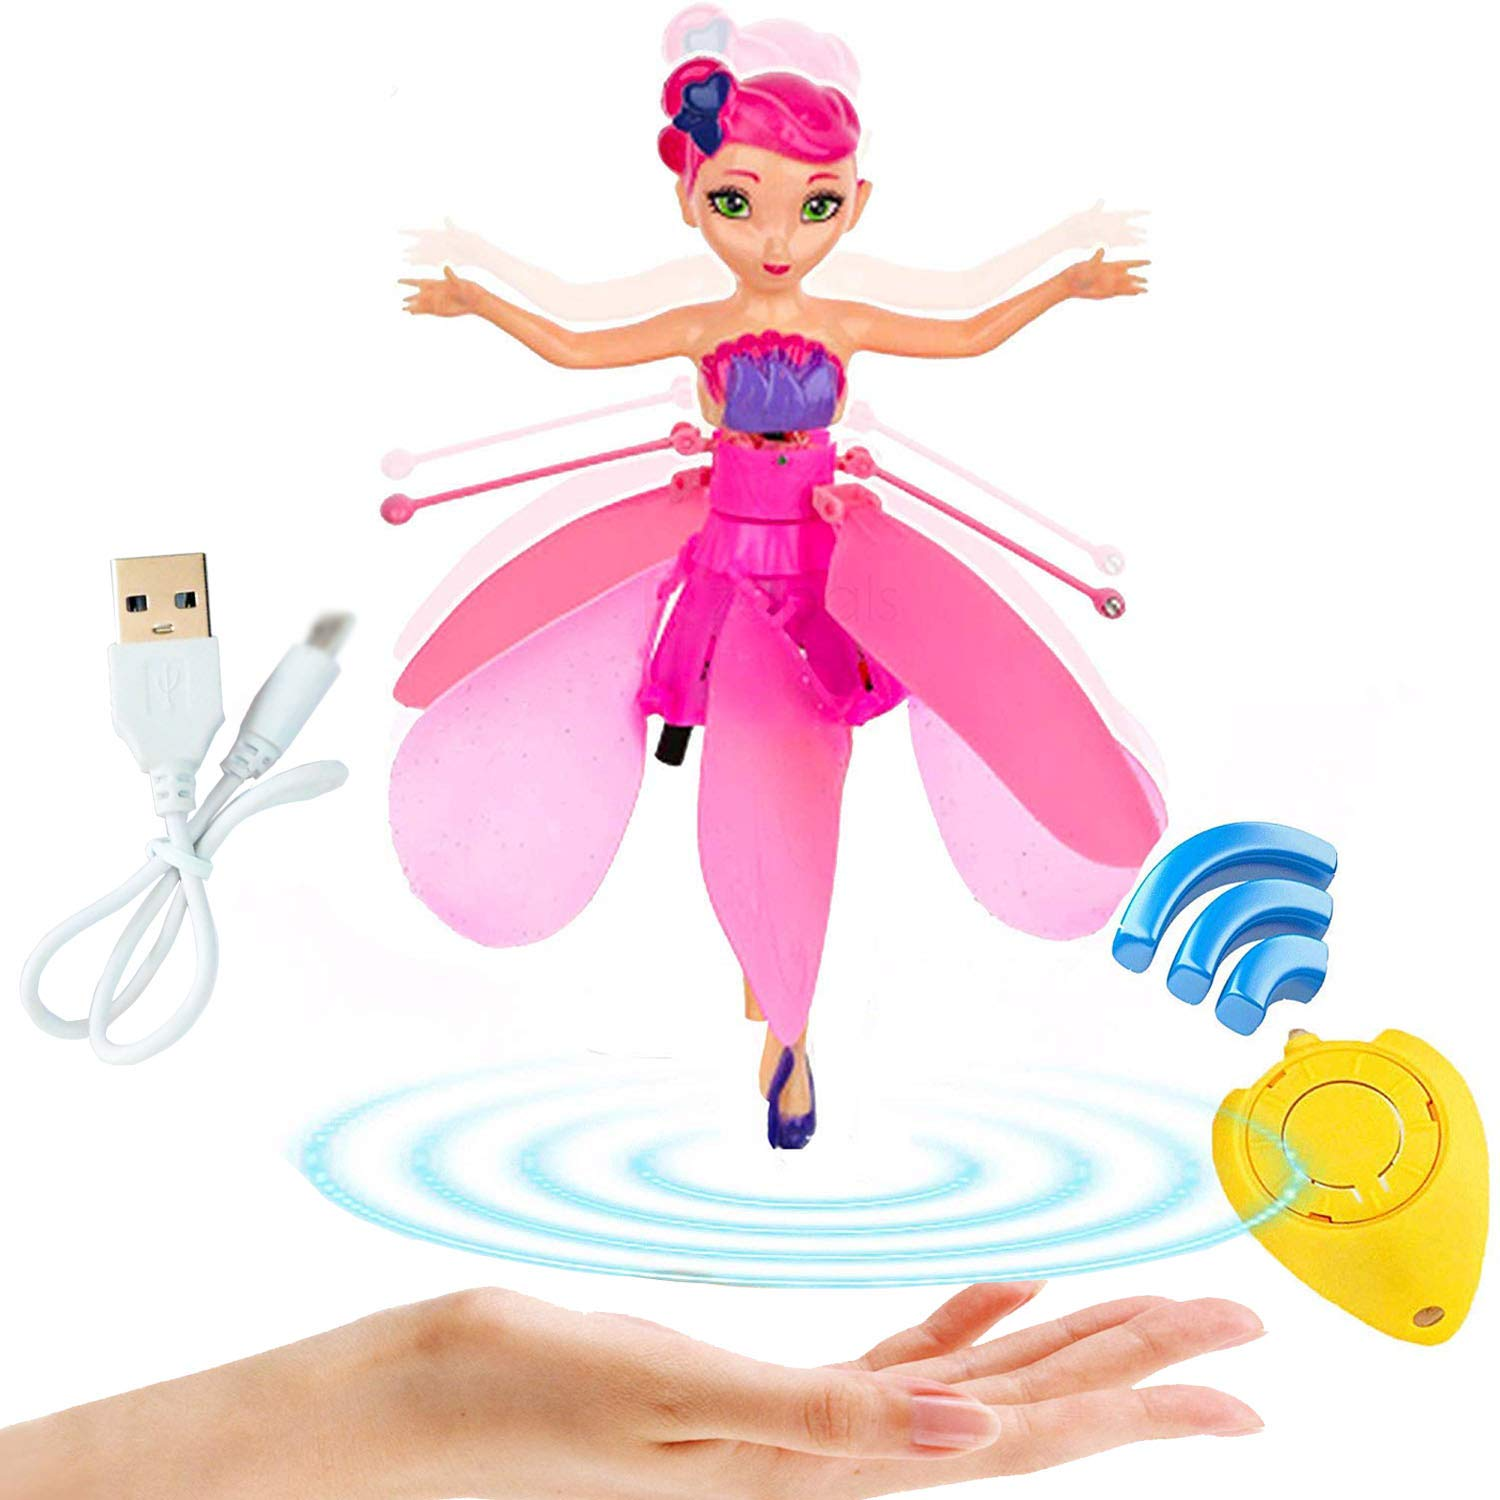 litytlen Flying Fairy Doll Girl Infrared Sensor Control Remote Control Child Toy, Magic and Best Gift for 6 Year Old Girl Kids Toy. Flying Princess Doll (Pink) by litytlen